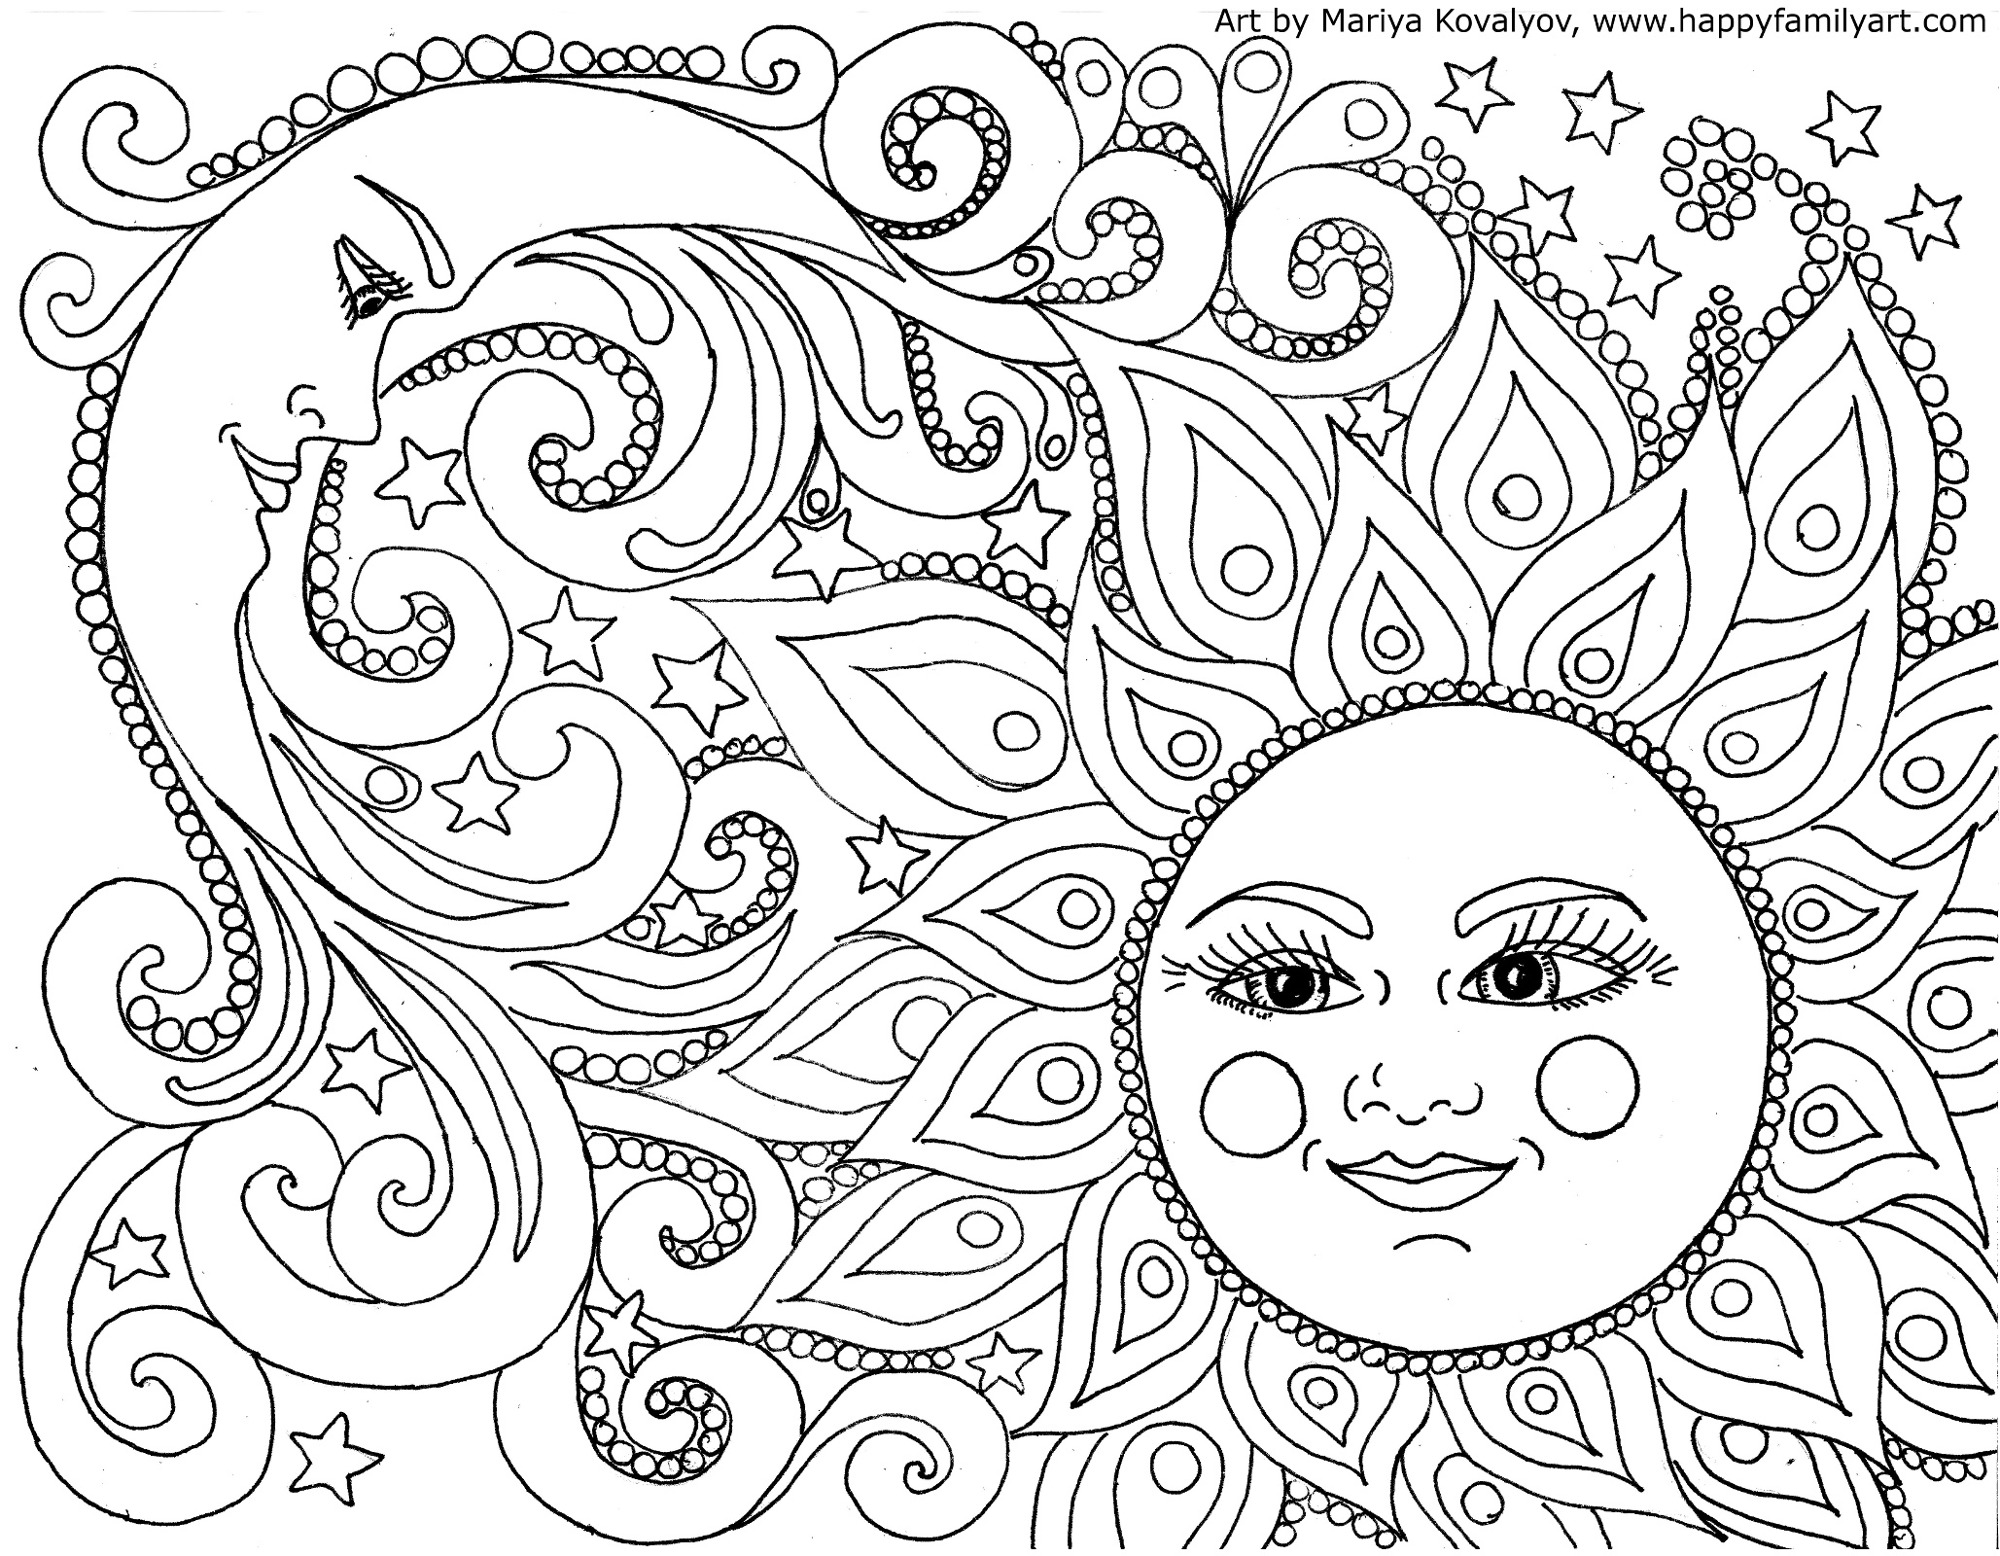 Happy Family Art Original And Fun Coloring Pages Coloring Page